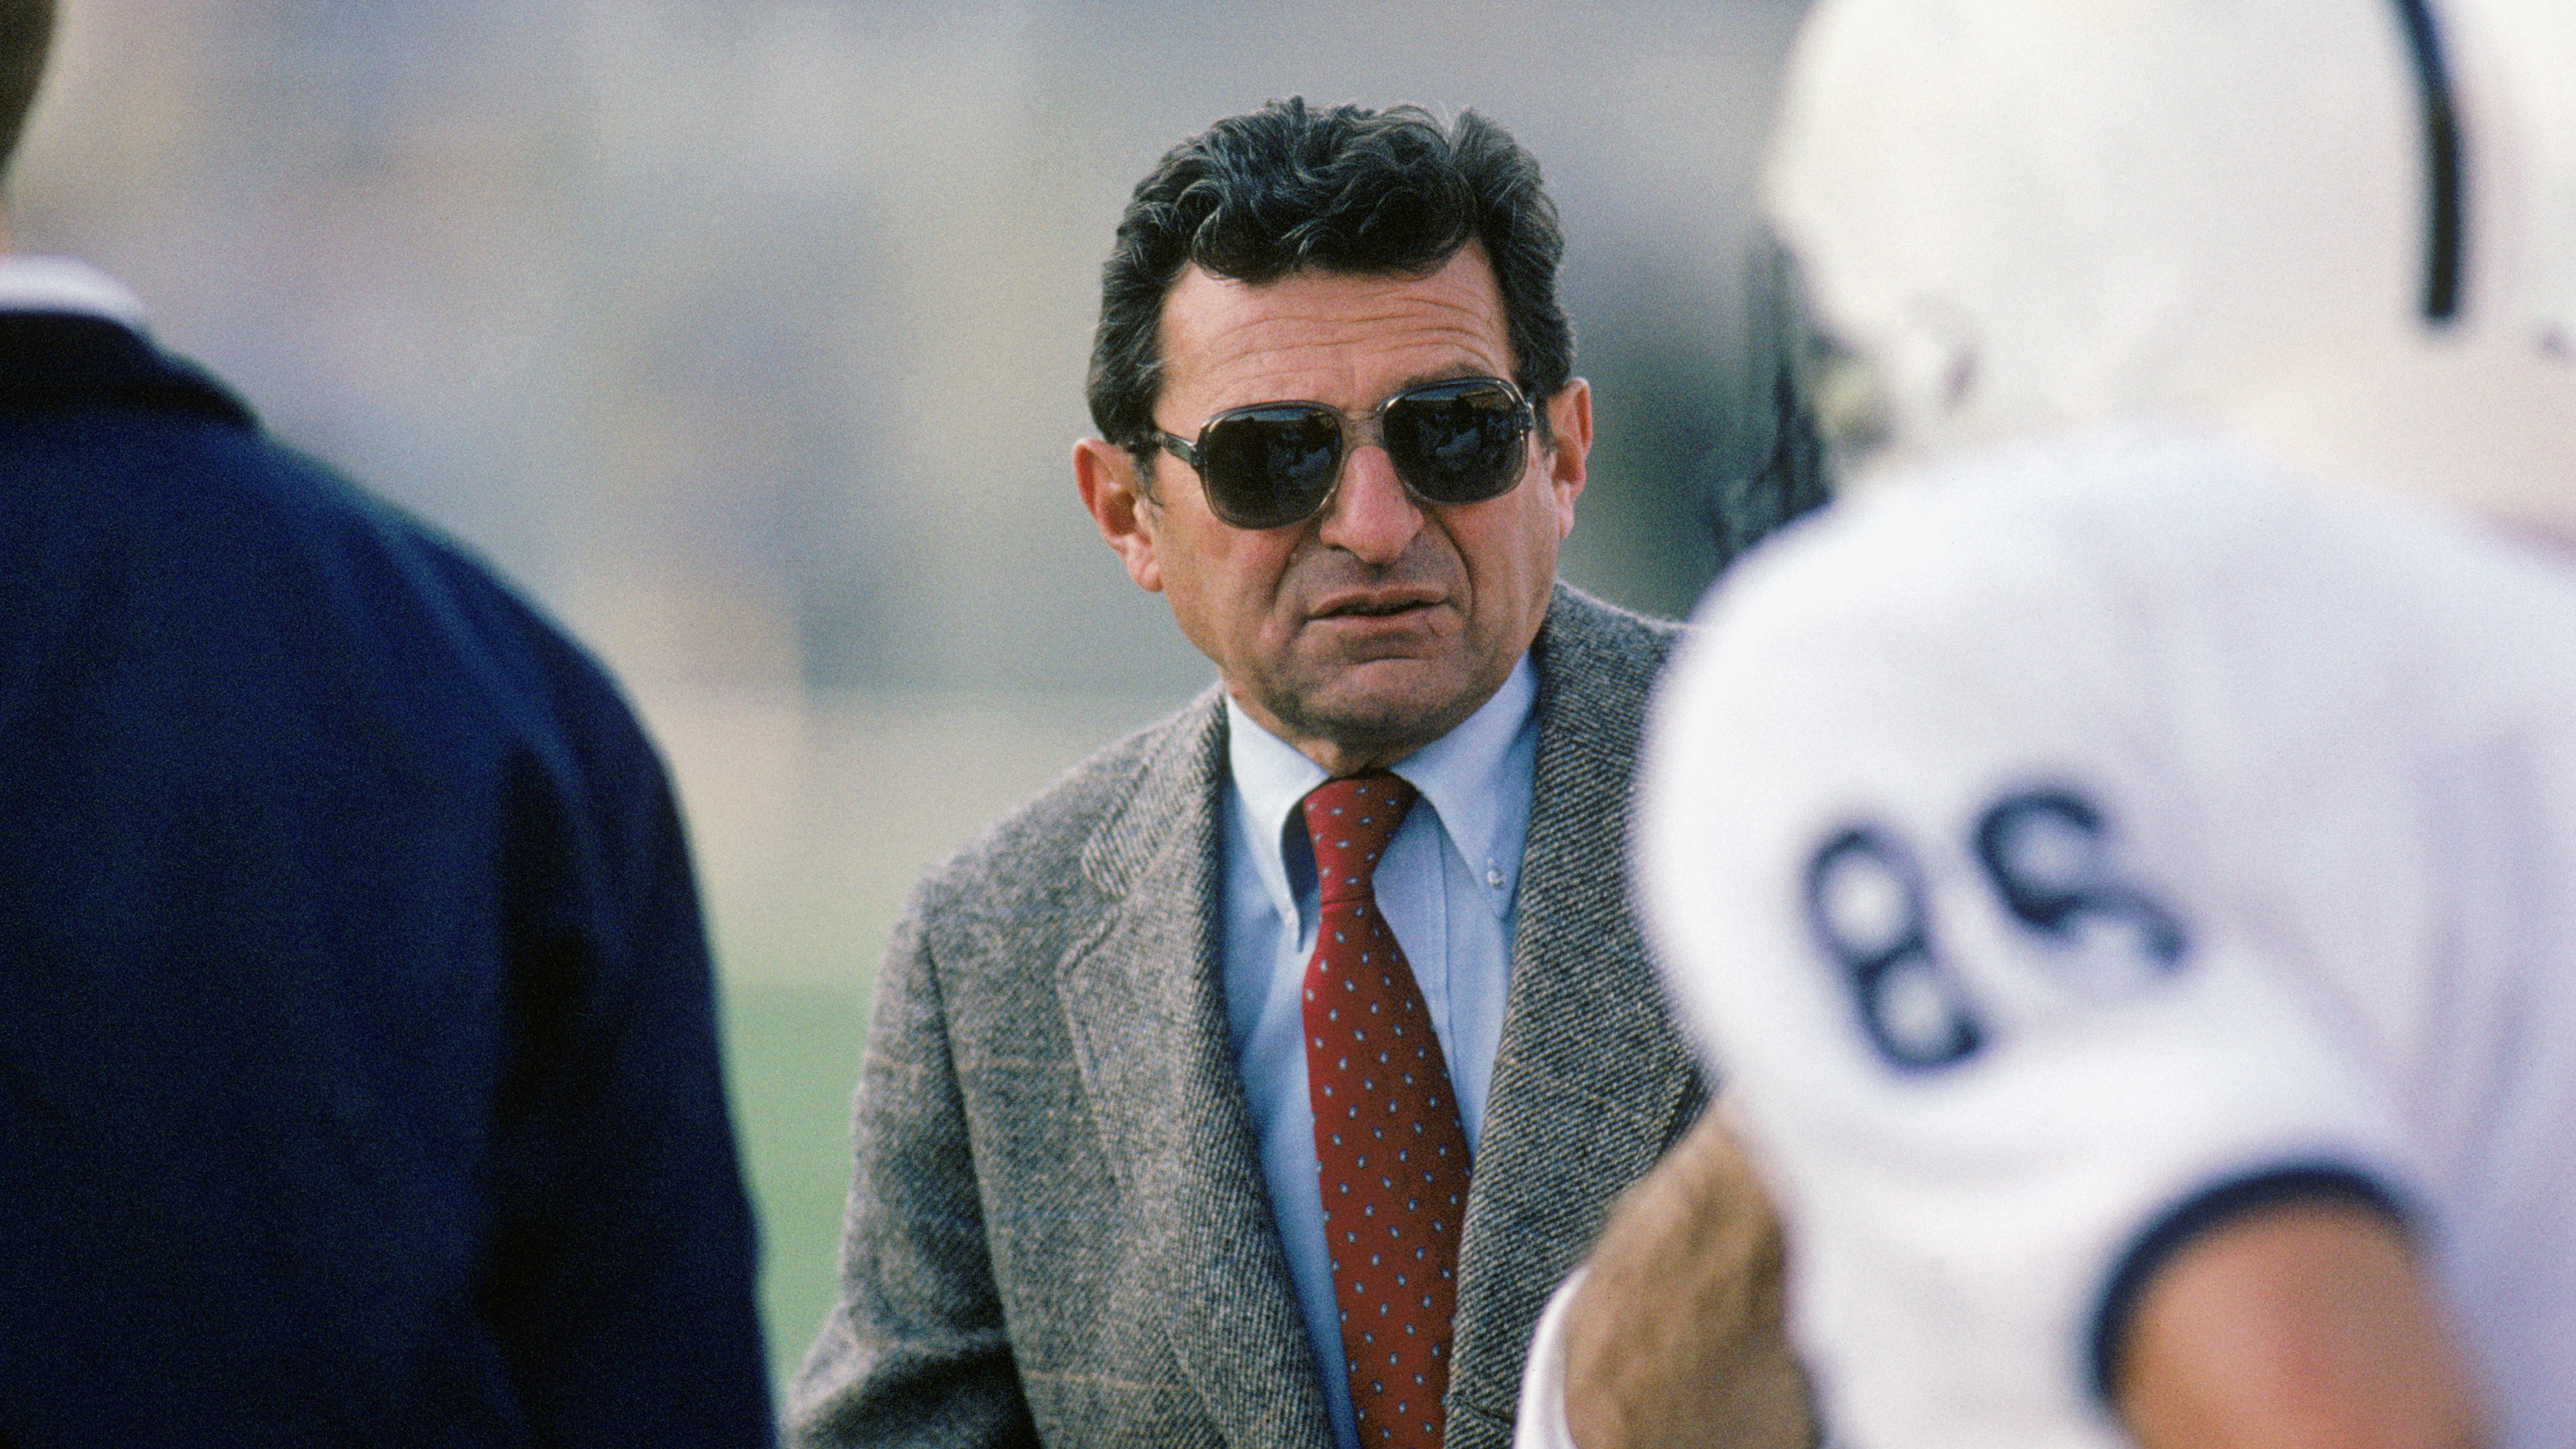 Penn State and the Paterno family settle claims against each other